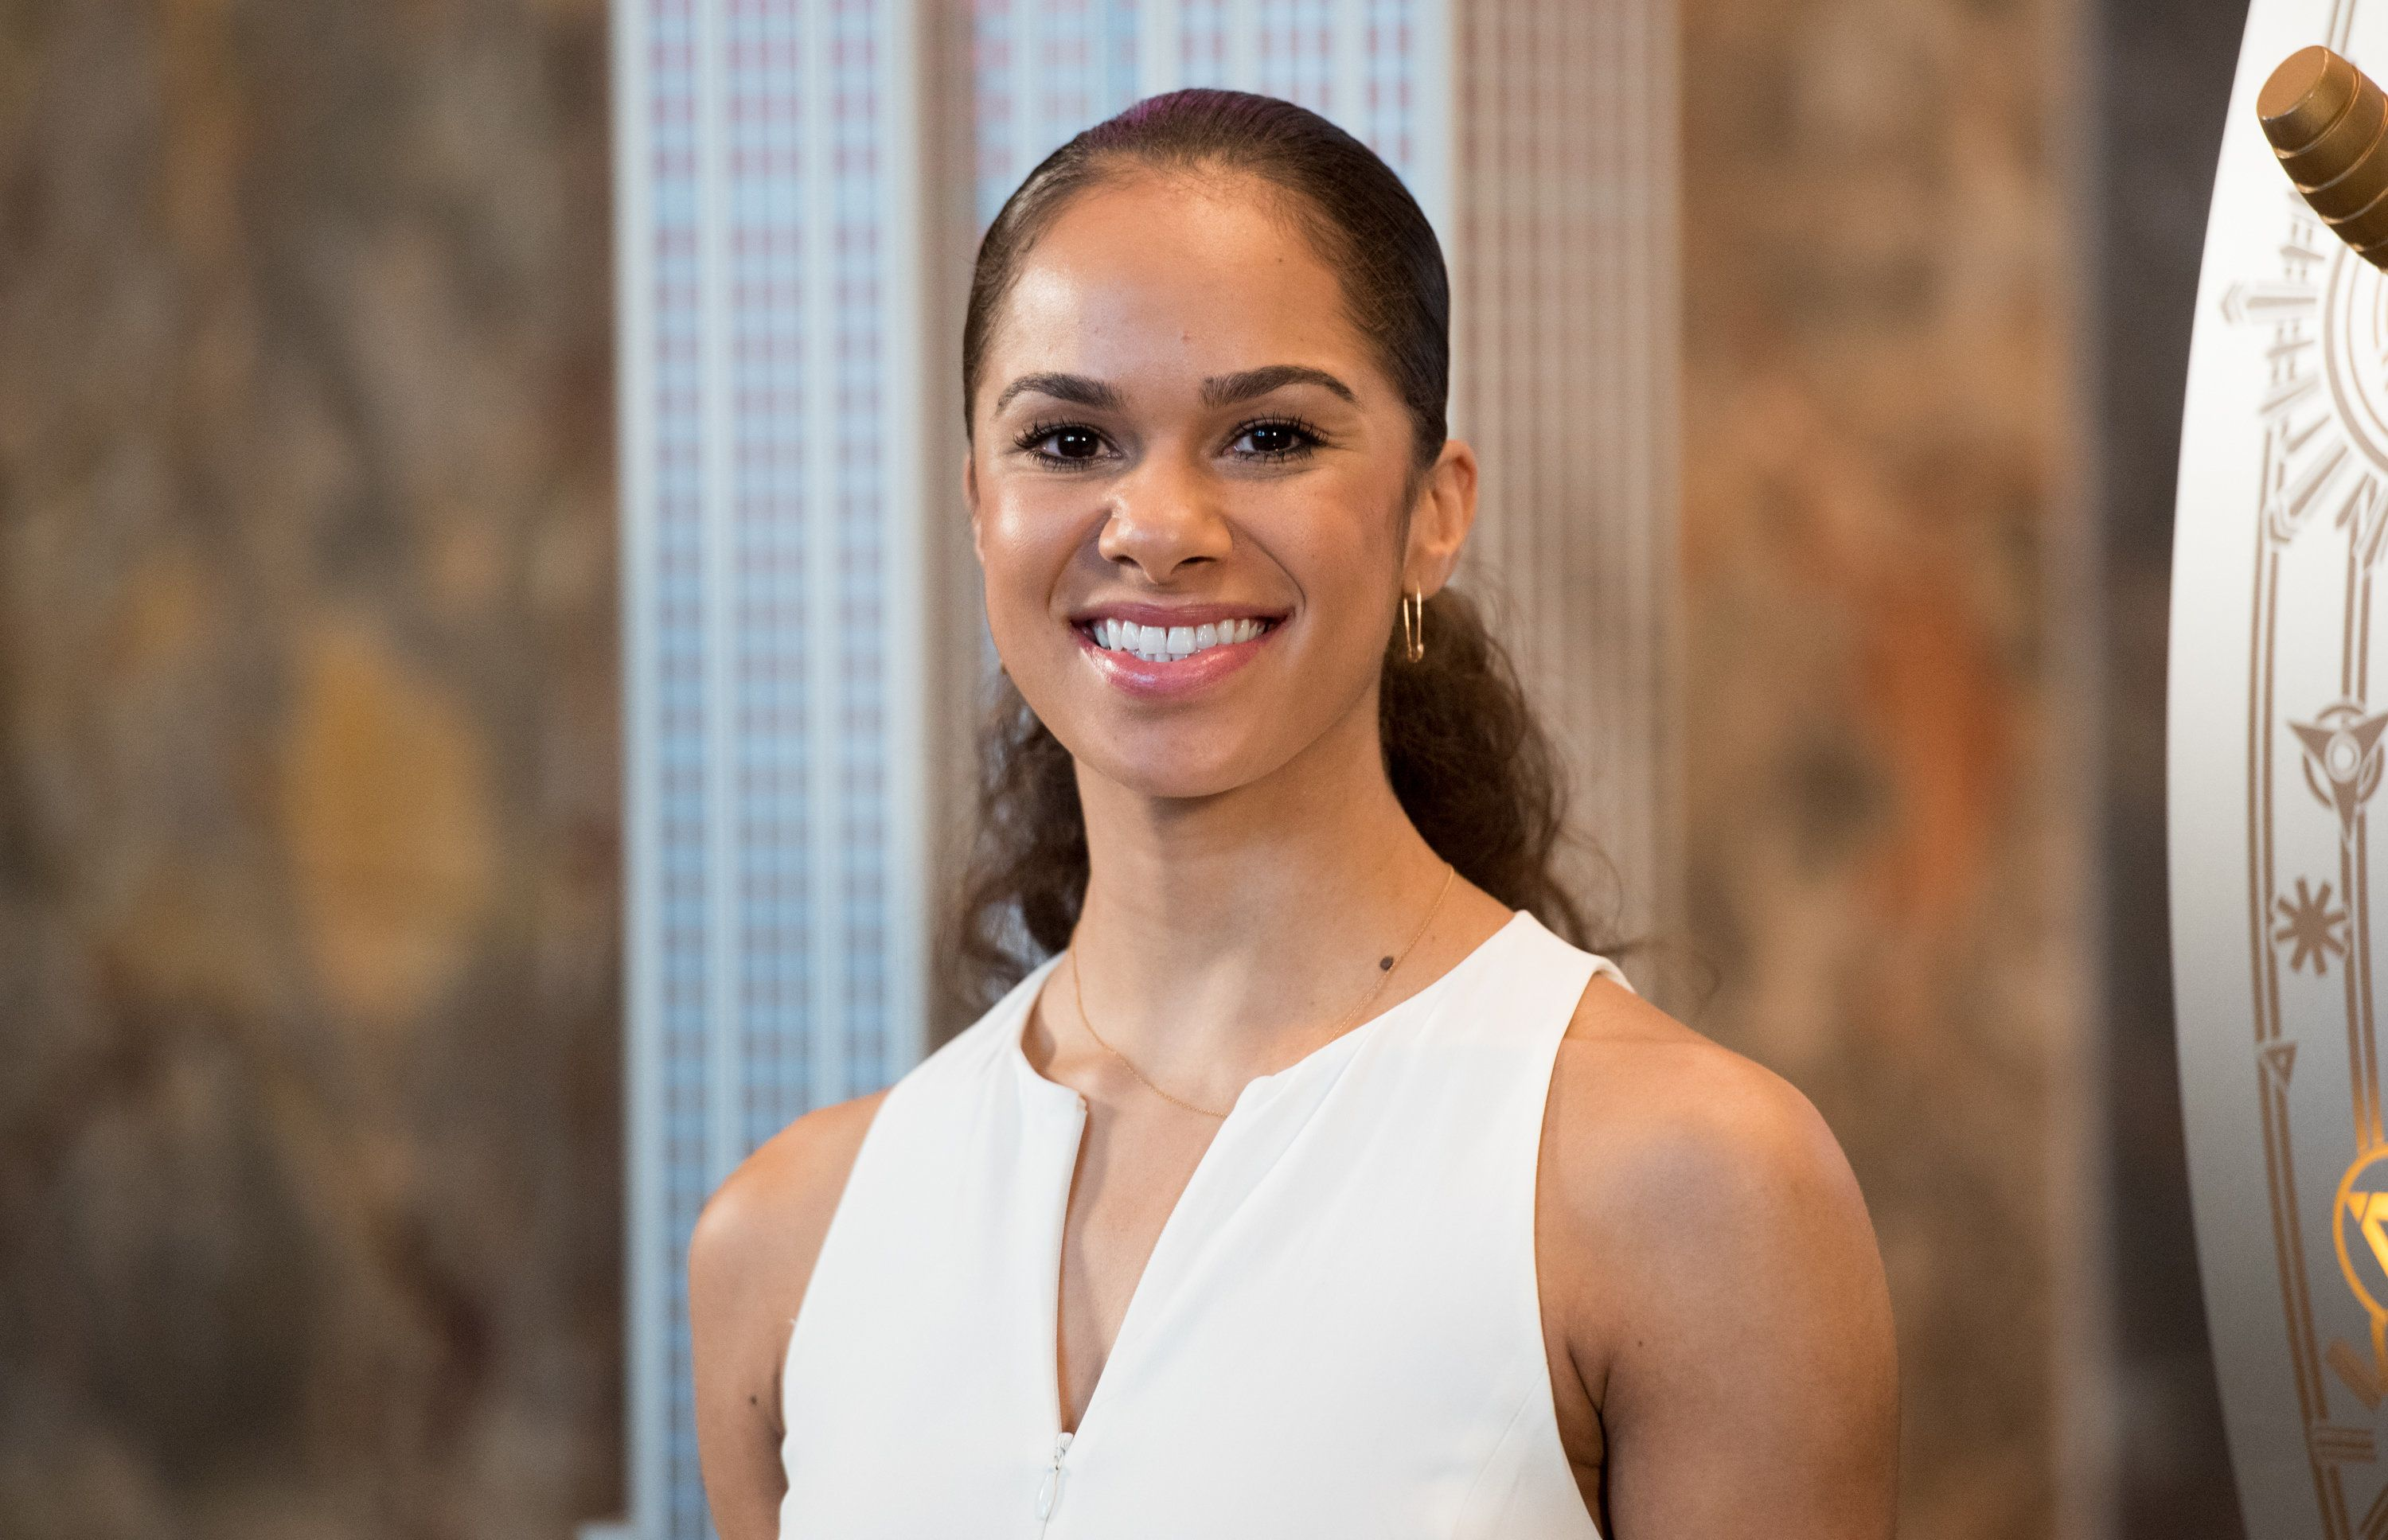 NEW YORK, NY - NOVEMBER 09:  Ballet dancer Misty Copeland lights the Empire State Building in Honor of the 25th Anniversary of Glamour's Women of the Year Awards at The Empire State Building on November 9, 2015 in New York City.  (Photo by Noam Galai/WireImage)